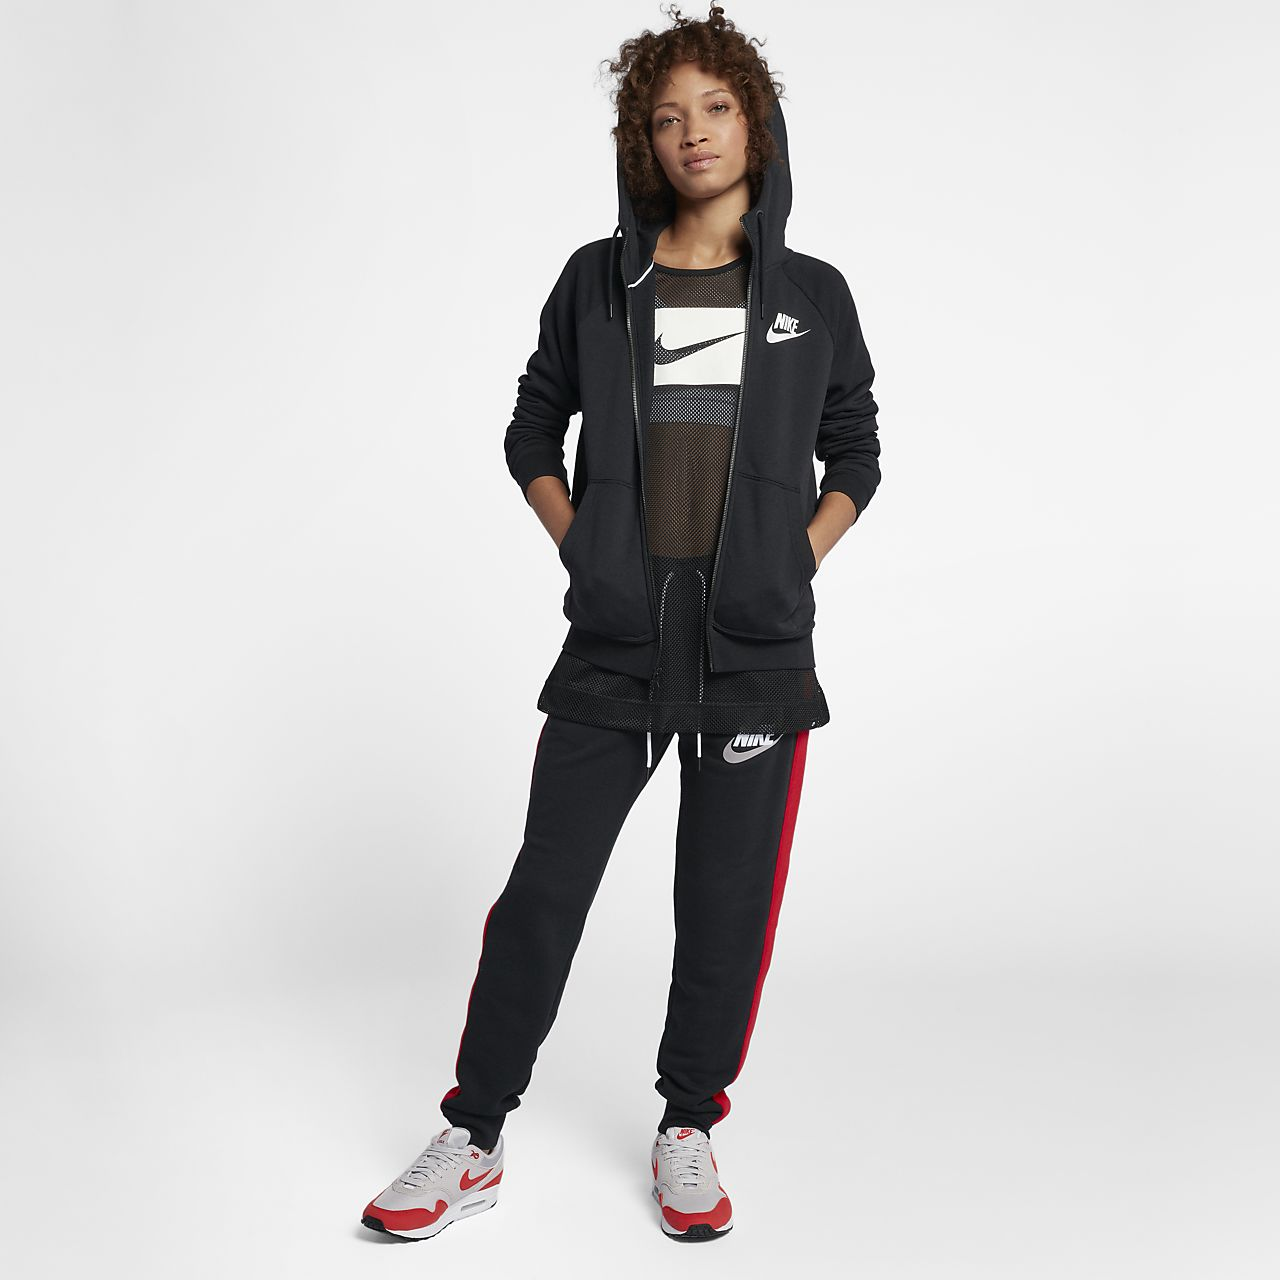 a0dec6fc9103 Nike Sportswear Rally Women s Full-Zip Hoodie. Nike.com GB